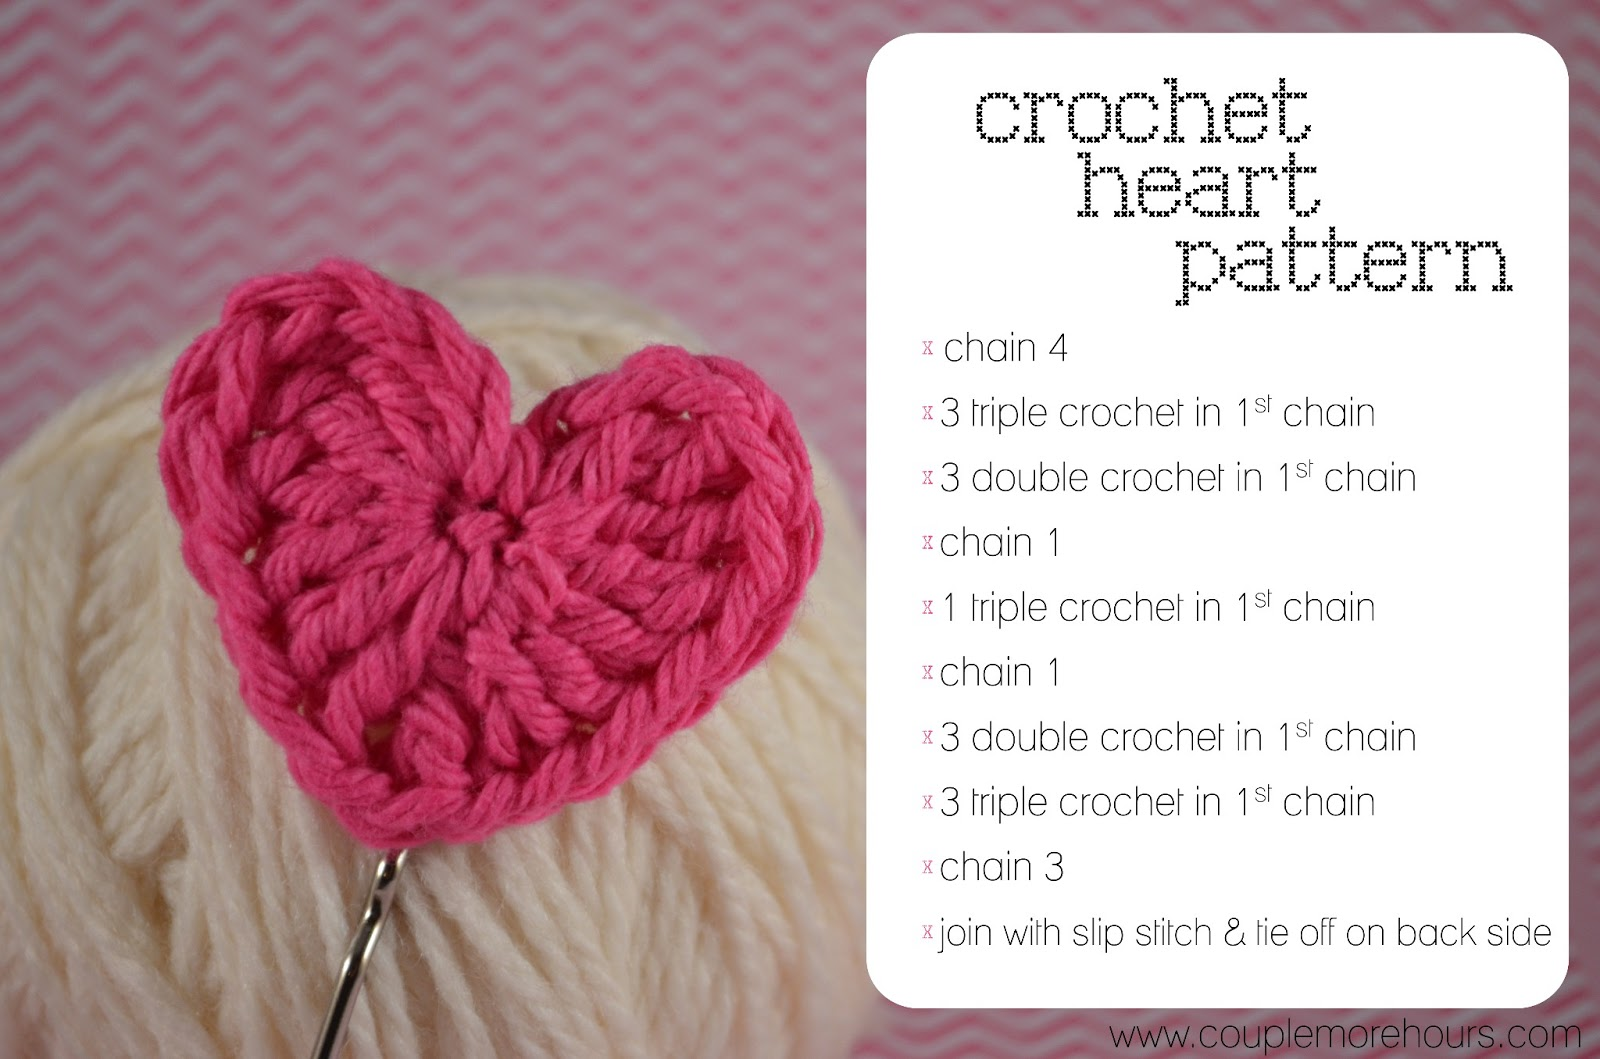 Crochet A Heart : You can use any size crochet hook. I used a G hook on my hearts.